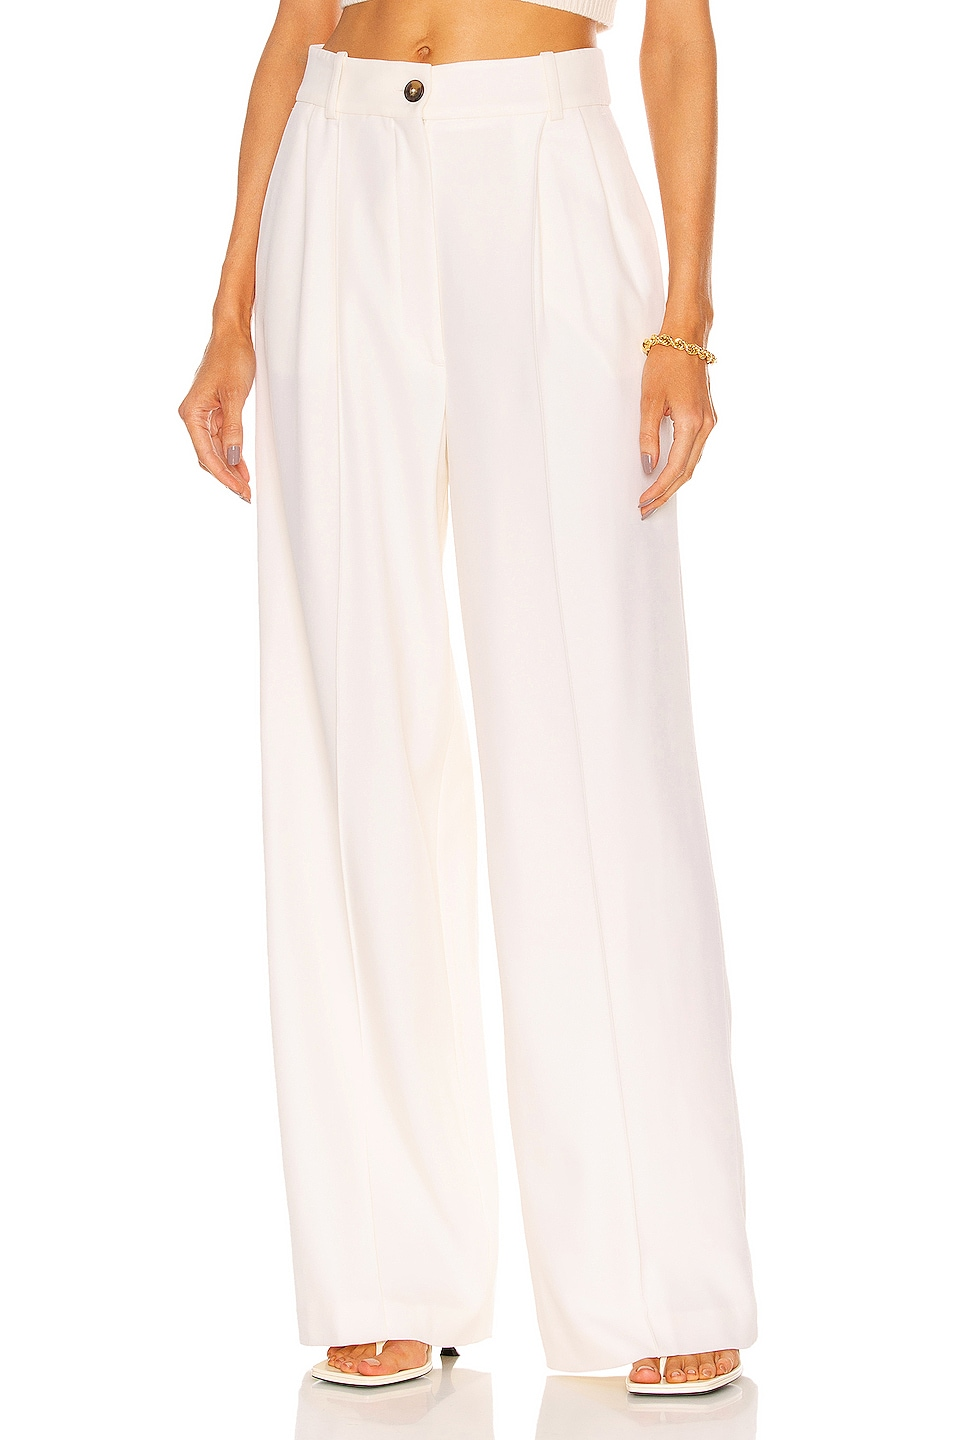 Image 1 of Loulou Studio Mouro Pant in Ivory